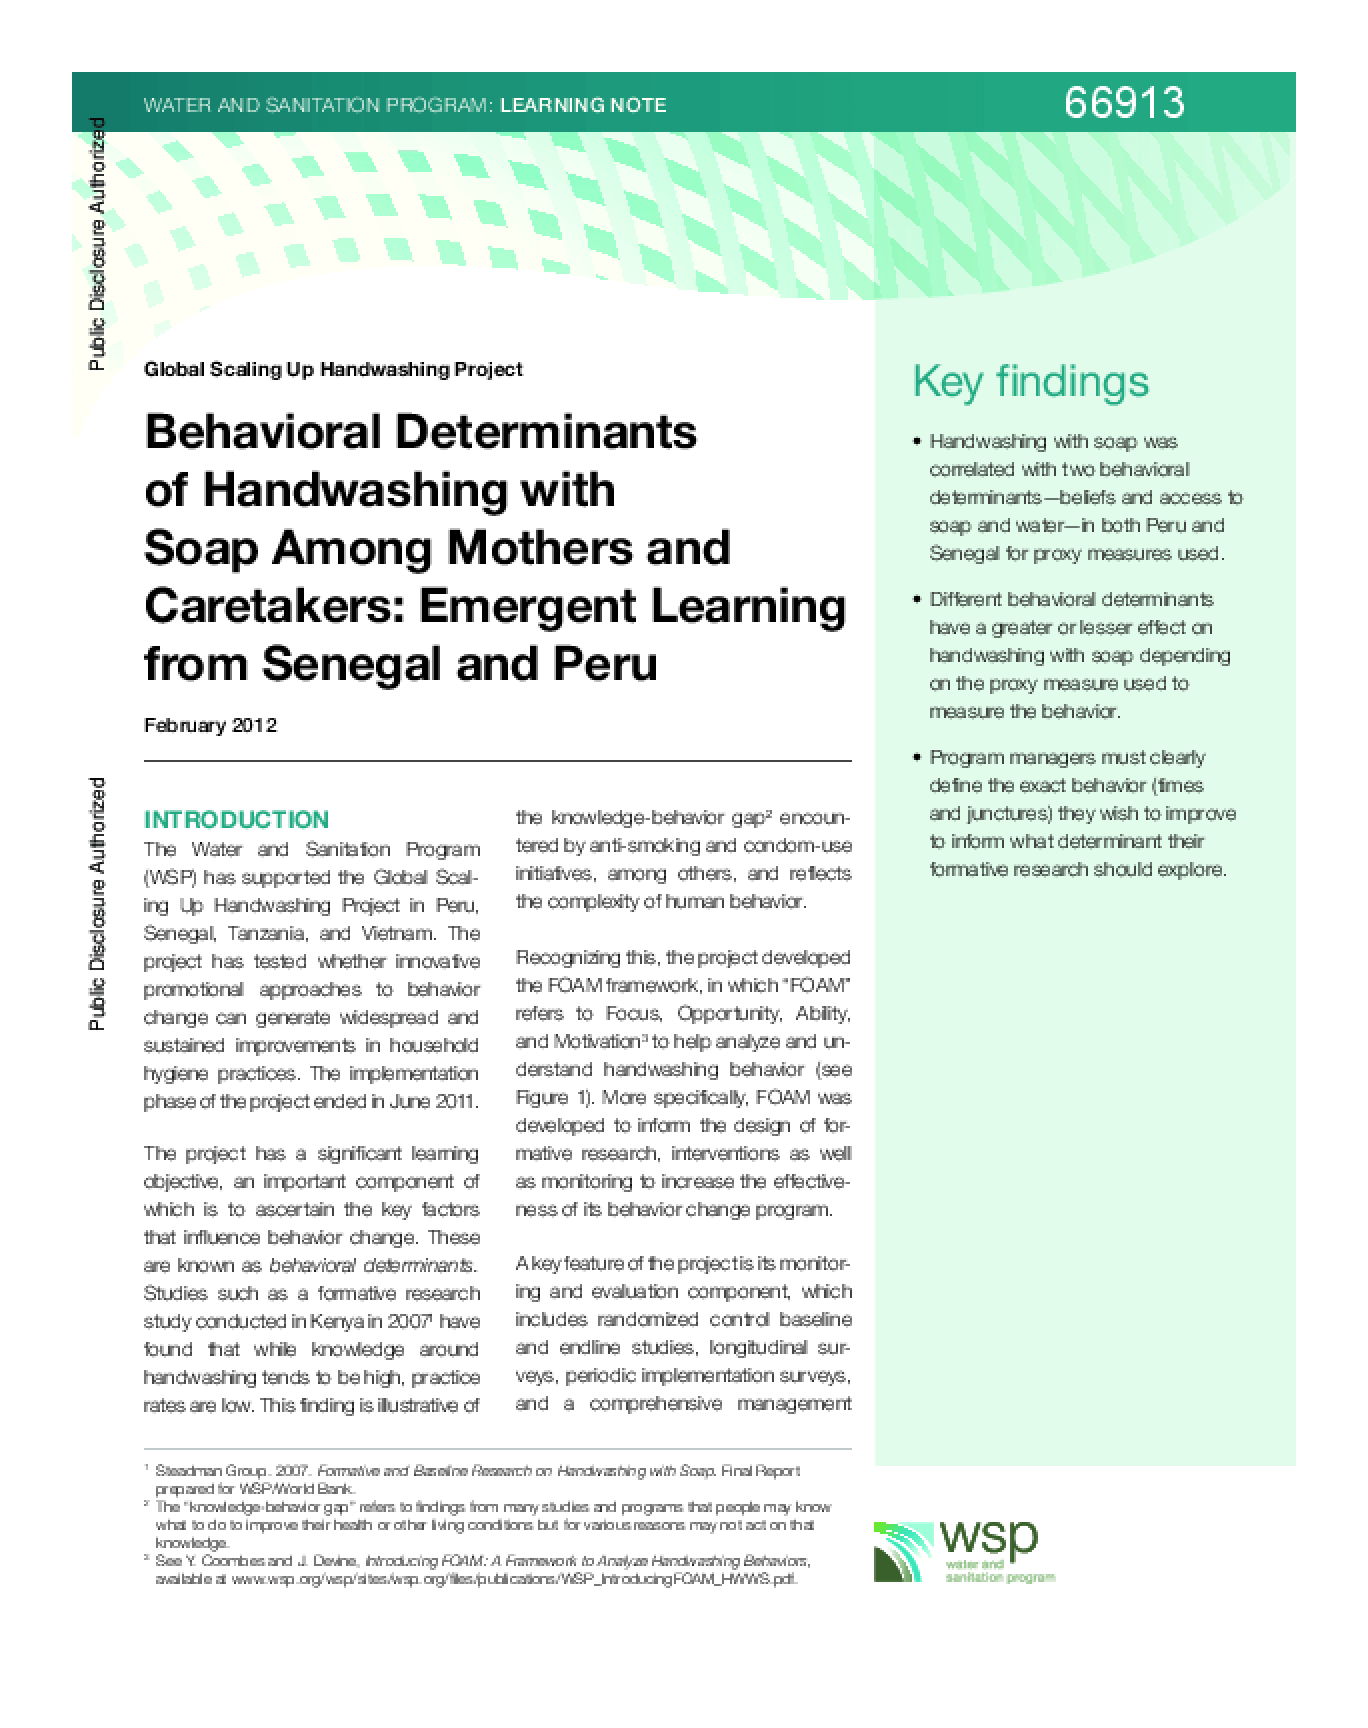 Behavioral Determinants of Handwashing with Soap Among Mothers and Caretakers: Emergent Learning from Senegal and Peru